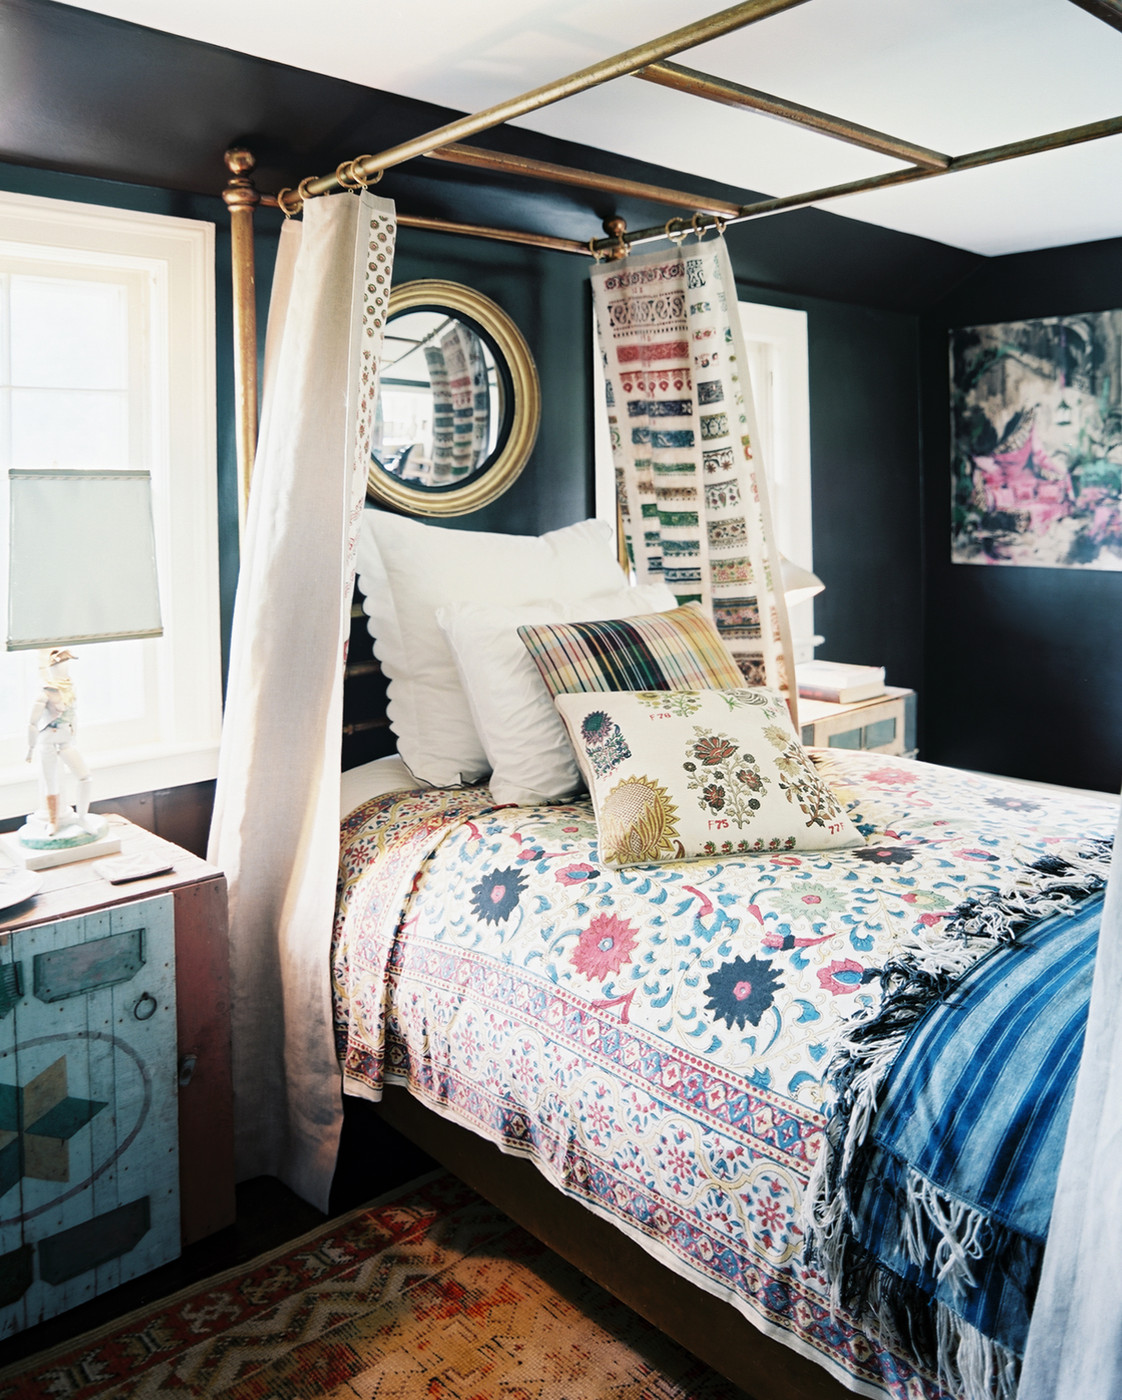 Chic Bedroom Decorating Ideas 40 Bohemian Bedrooms To Fashion Your Eclectic Tastes After